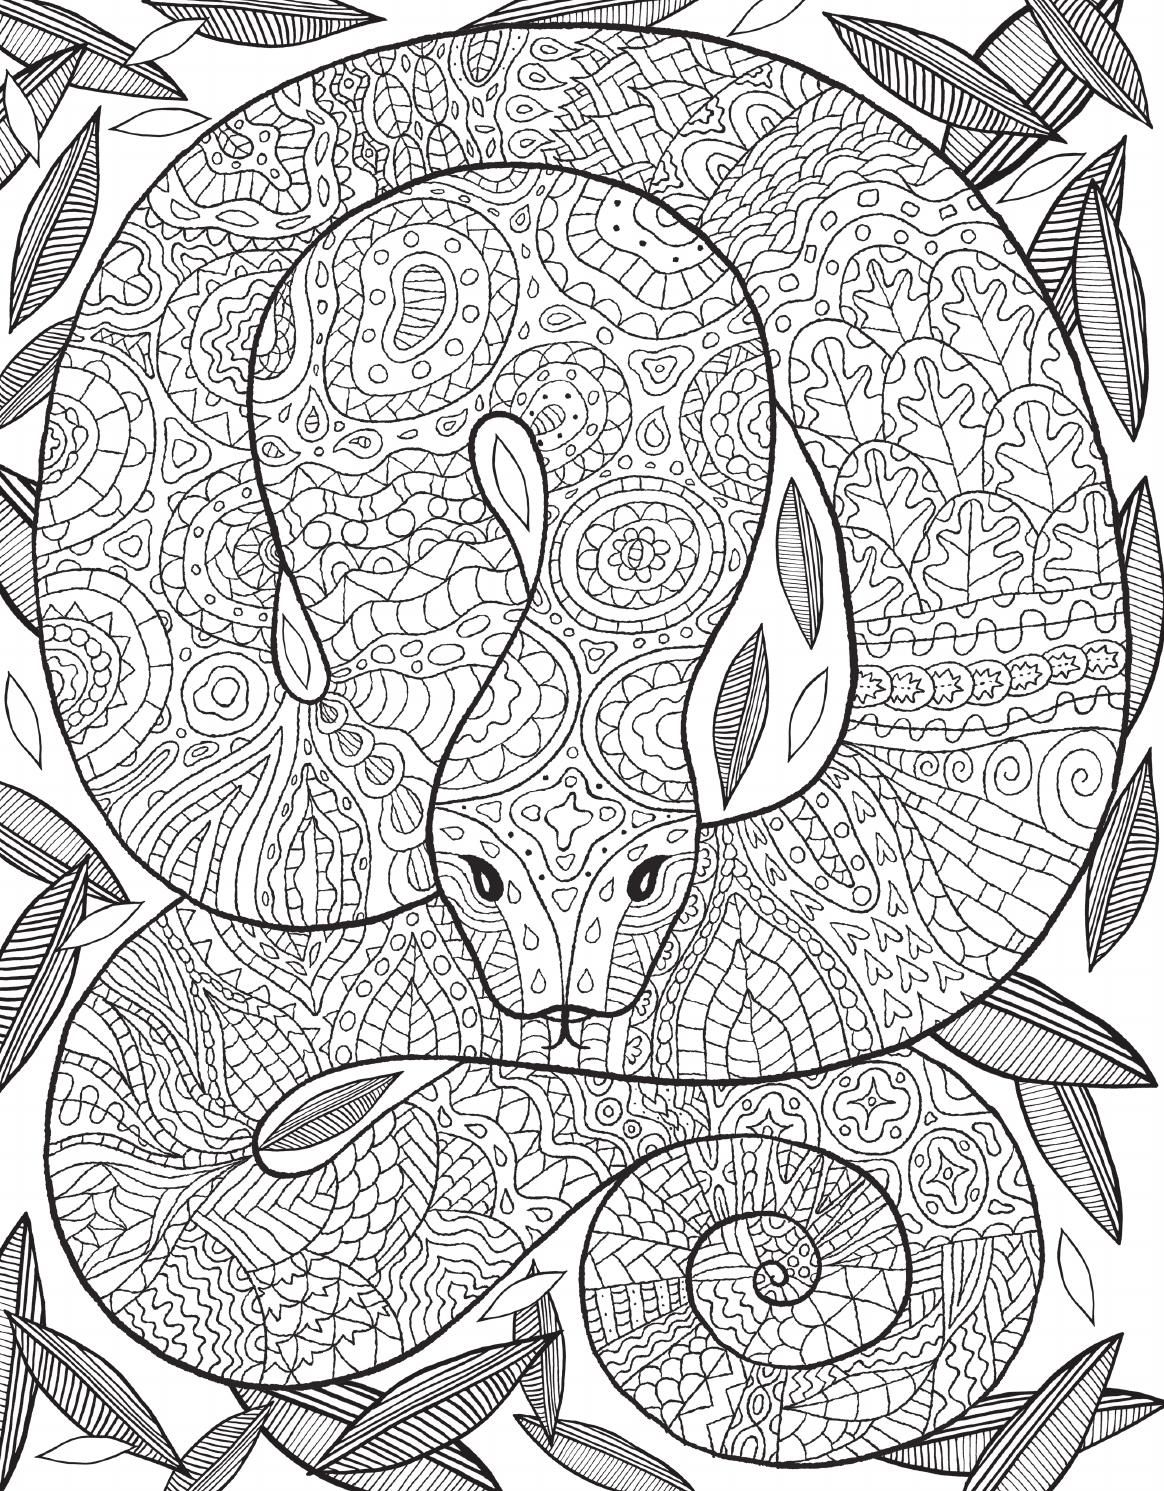 El libro de la selva | Animal Coloring Pages for Adults ...